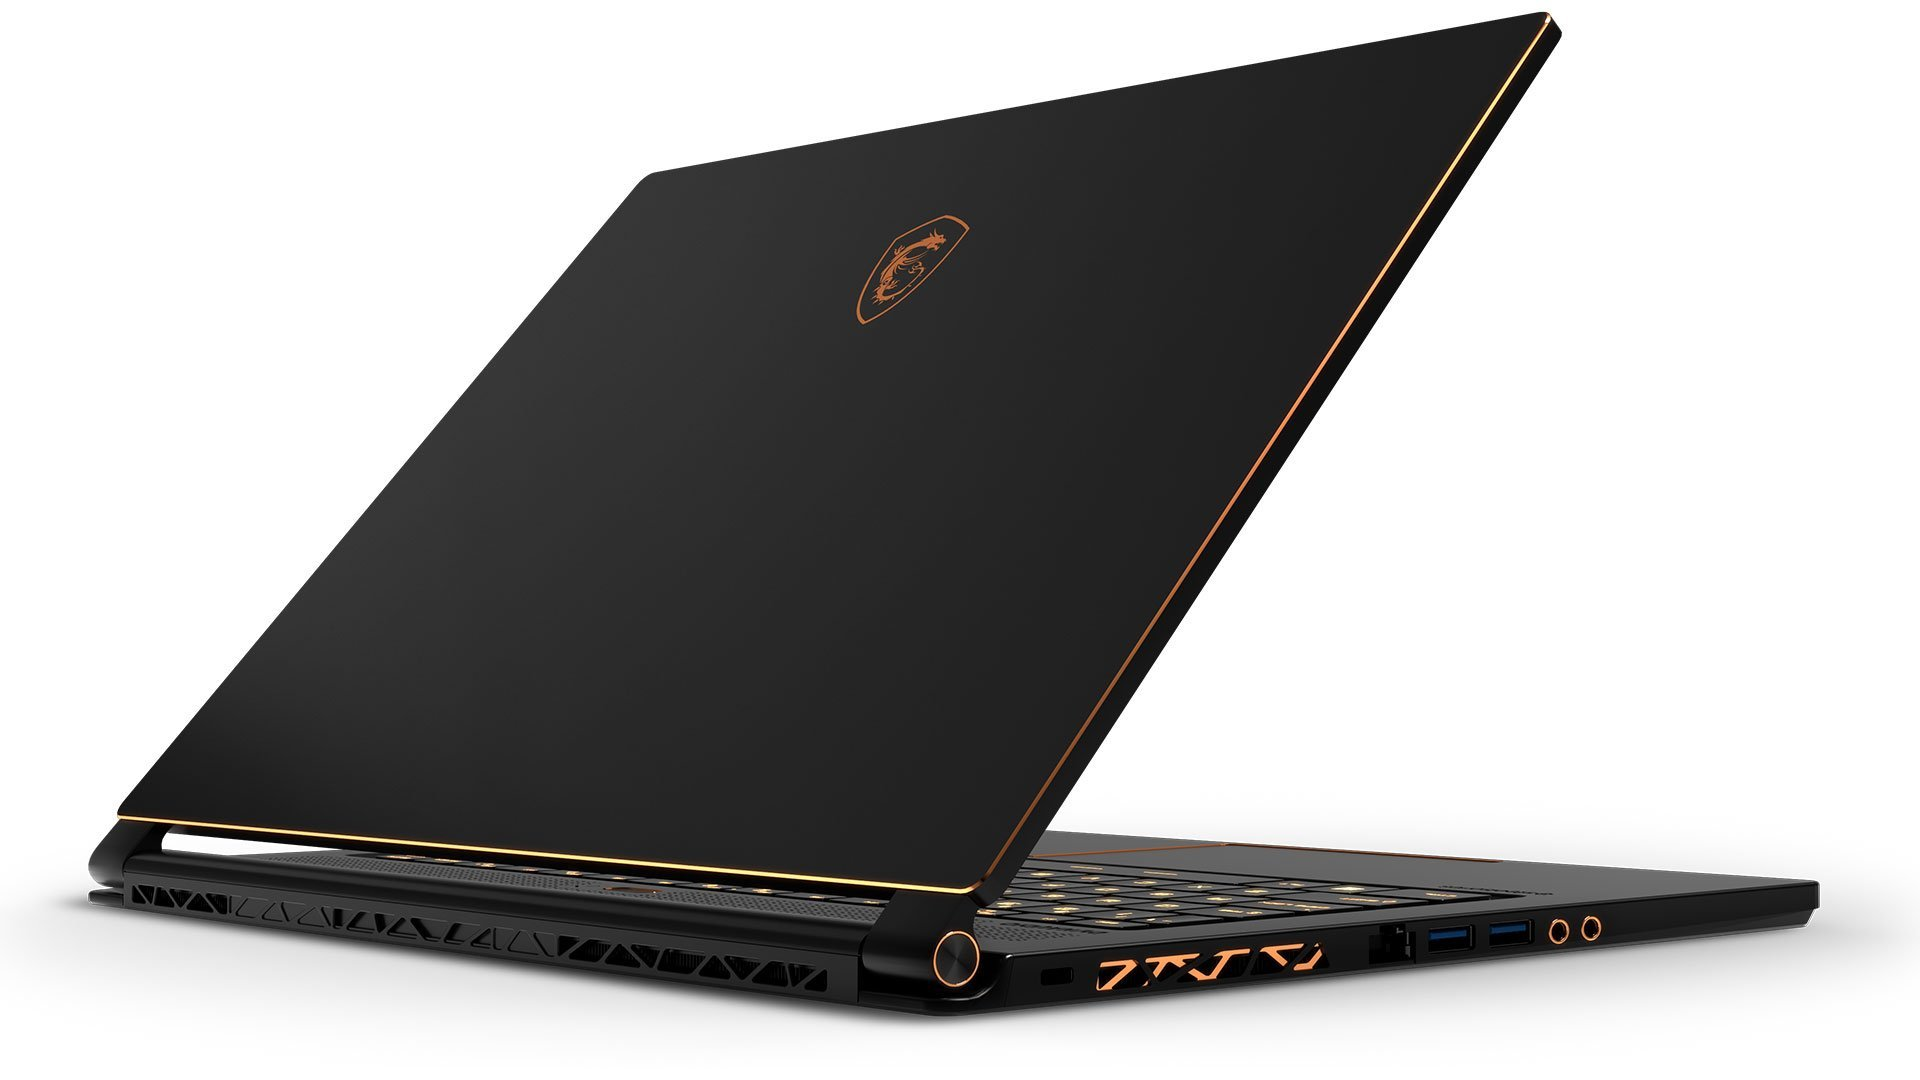 New Gaming Laptops from MSI with Intel 8th Generation Processors ~ goldfries